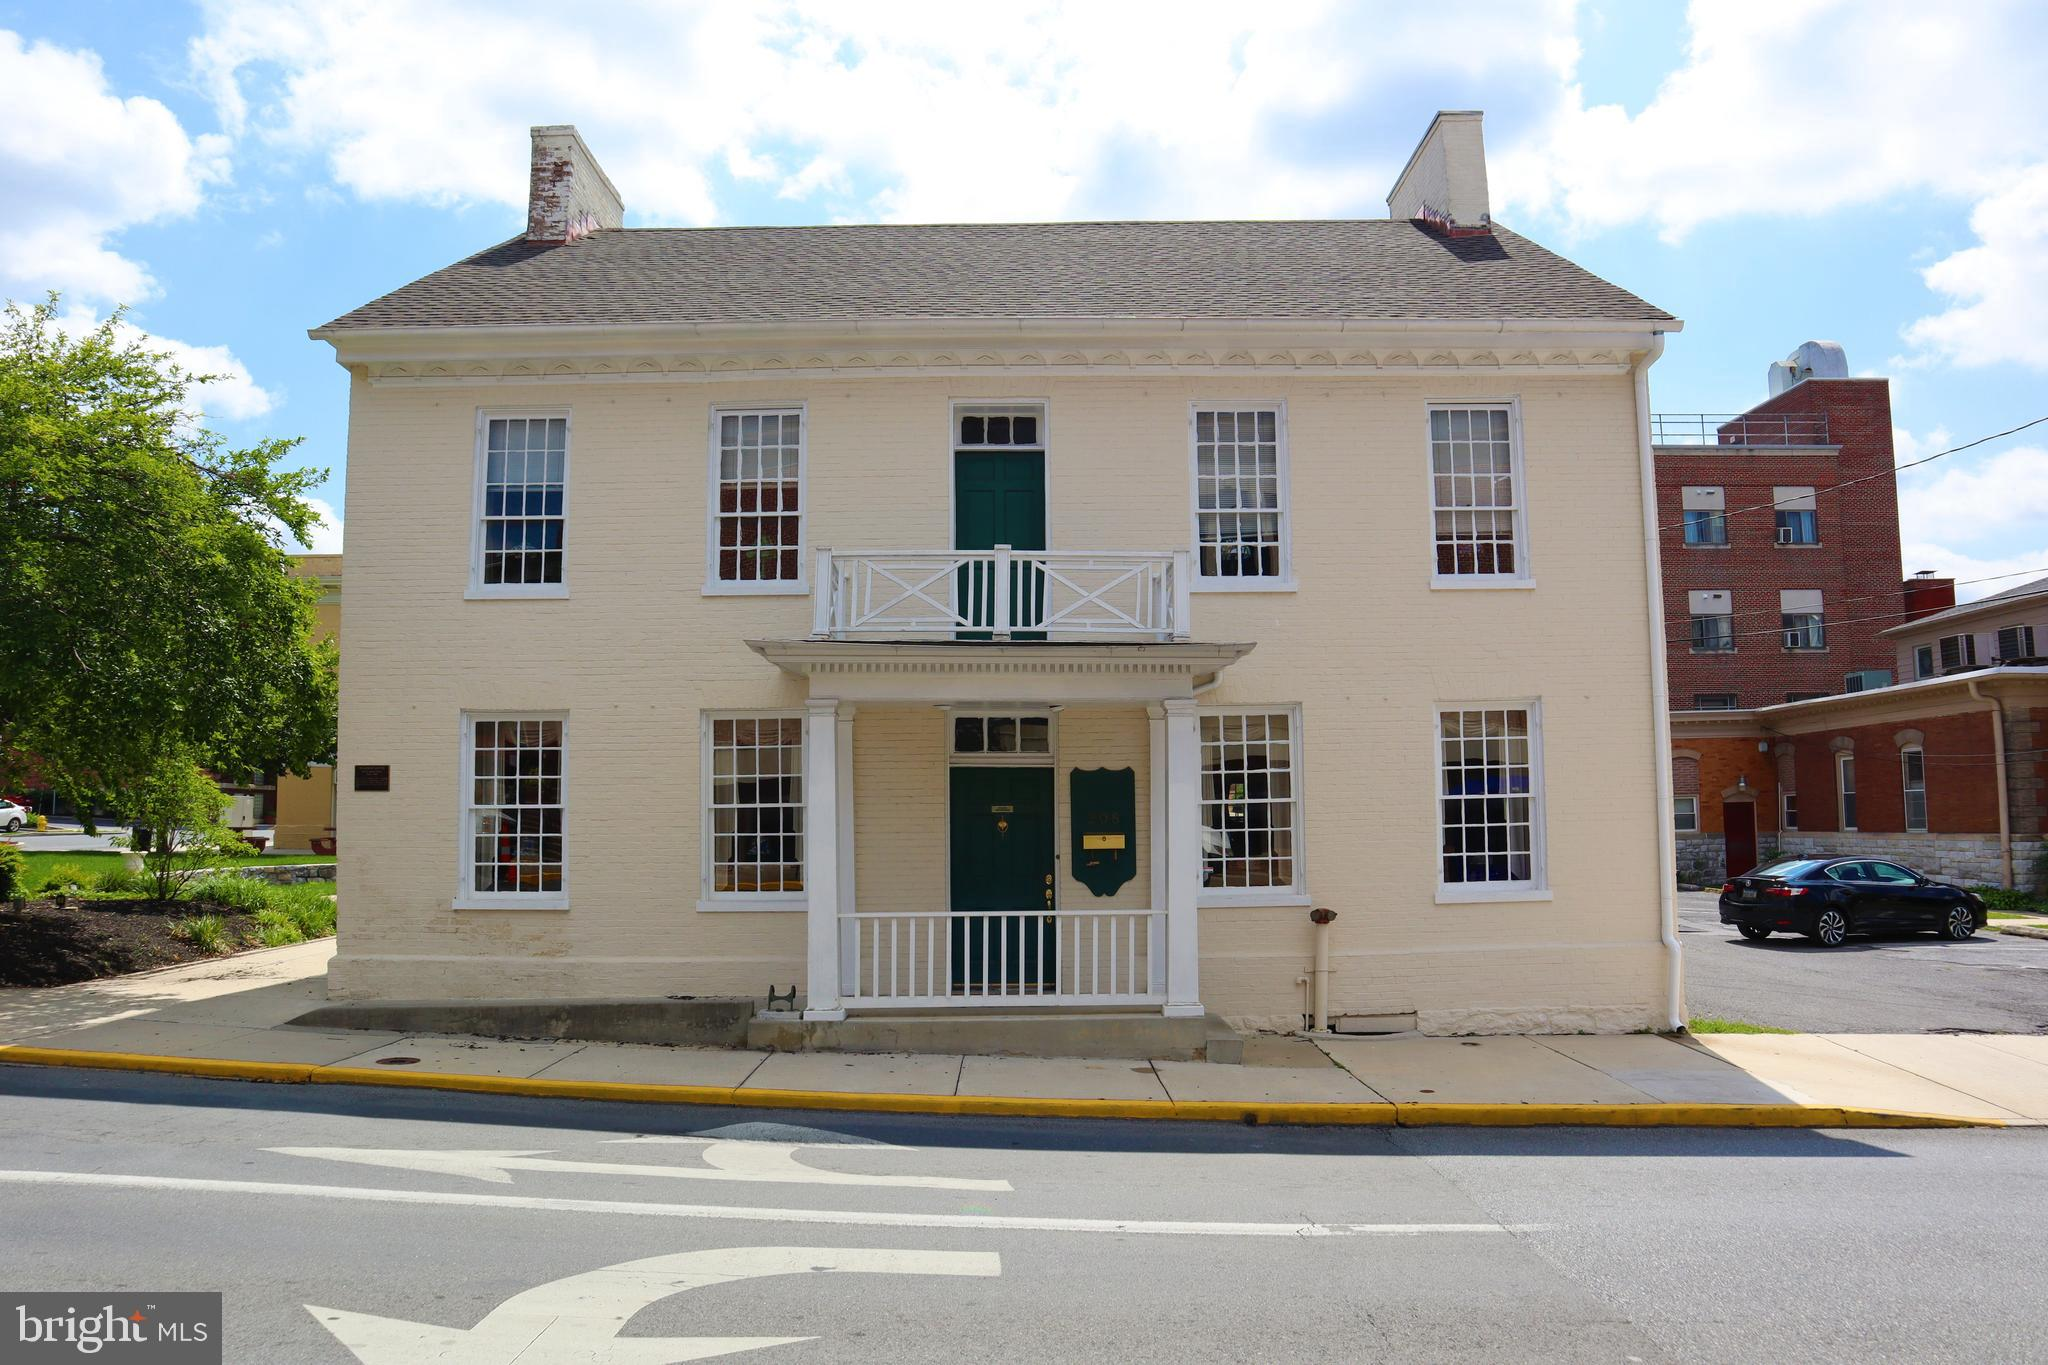 A rare chance to own a piece of Martinsburg history! The Historic Boarman House is situated in the h